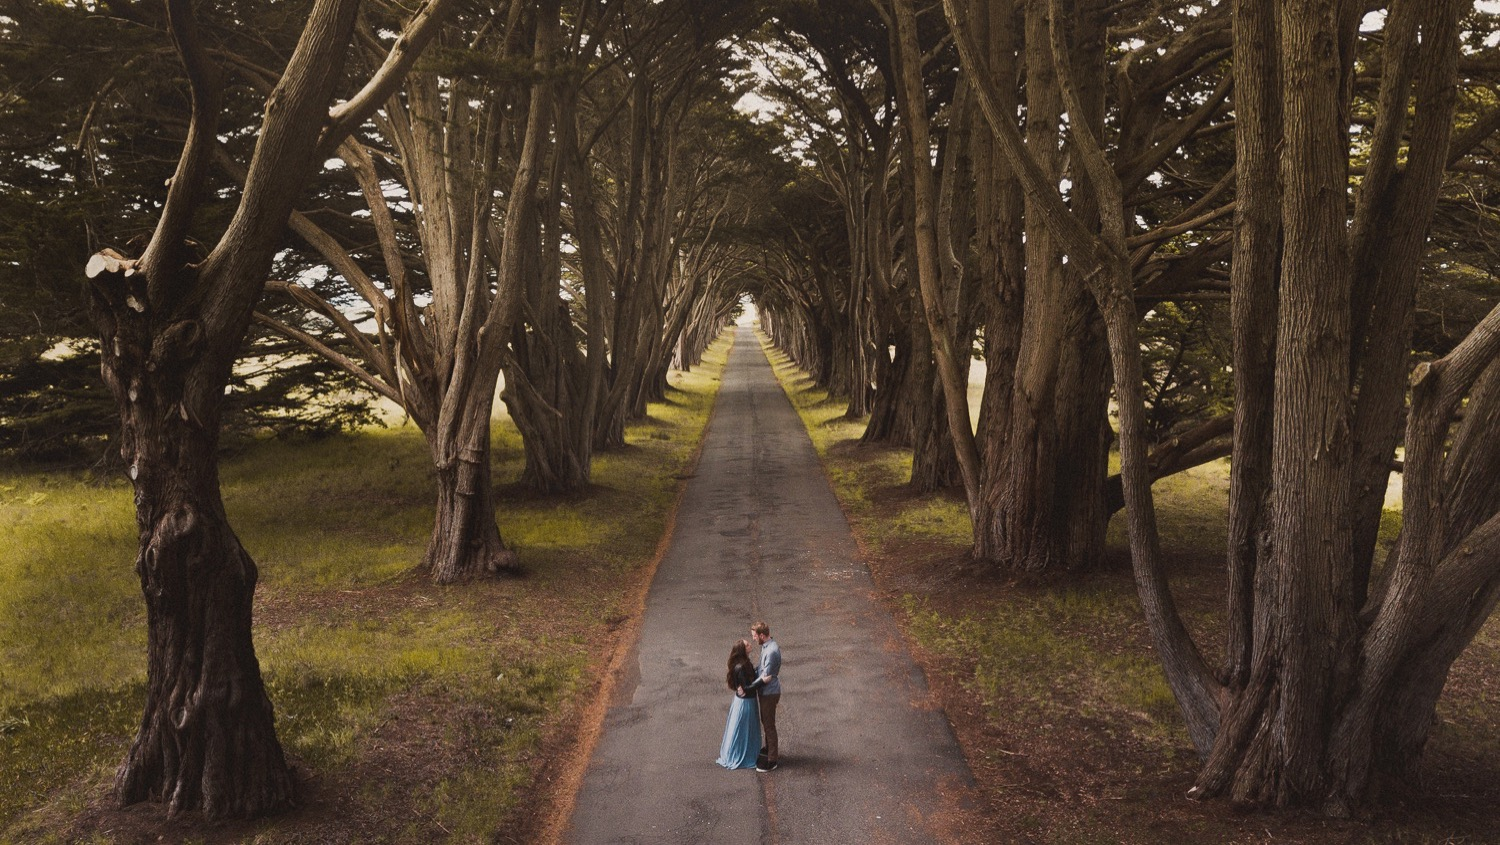 02_Engagement_Session_Cypress_Monterey_Tree_Tunnel.jpg